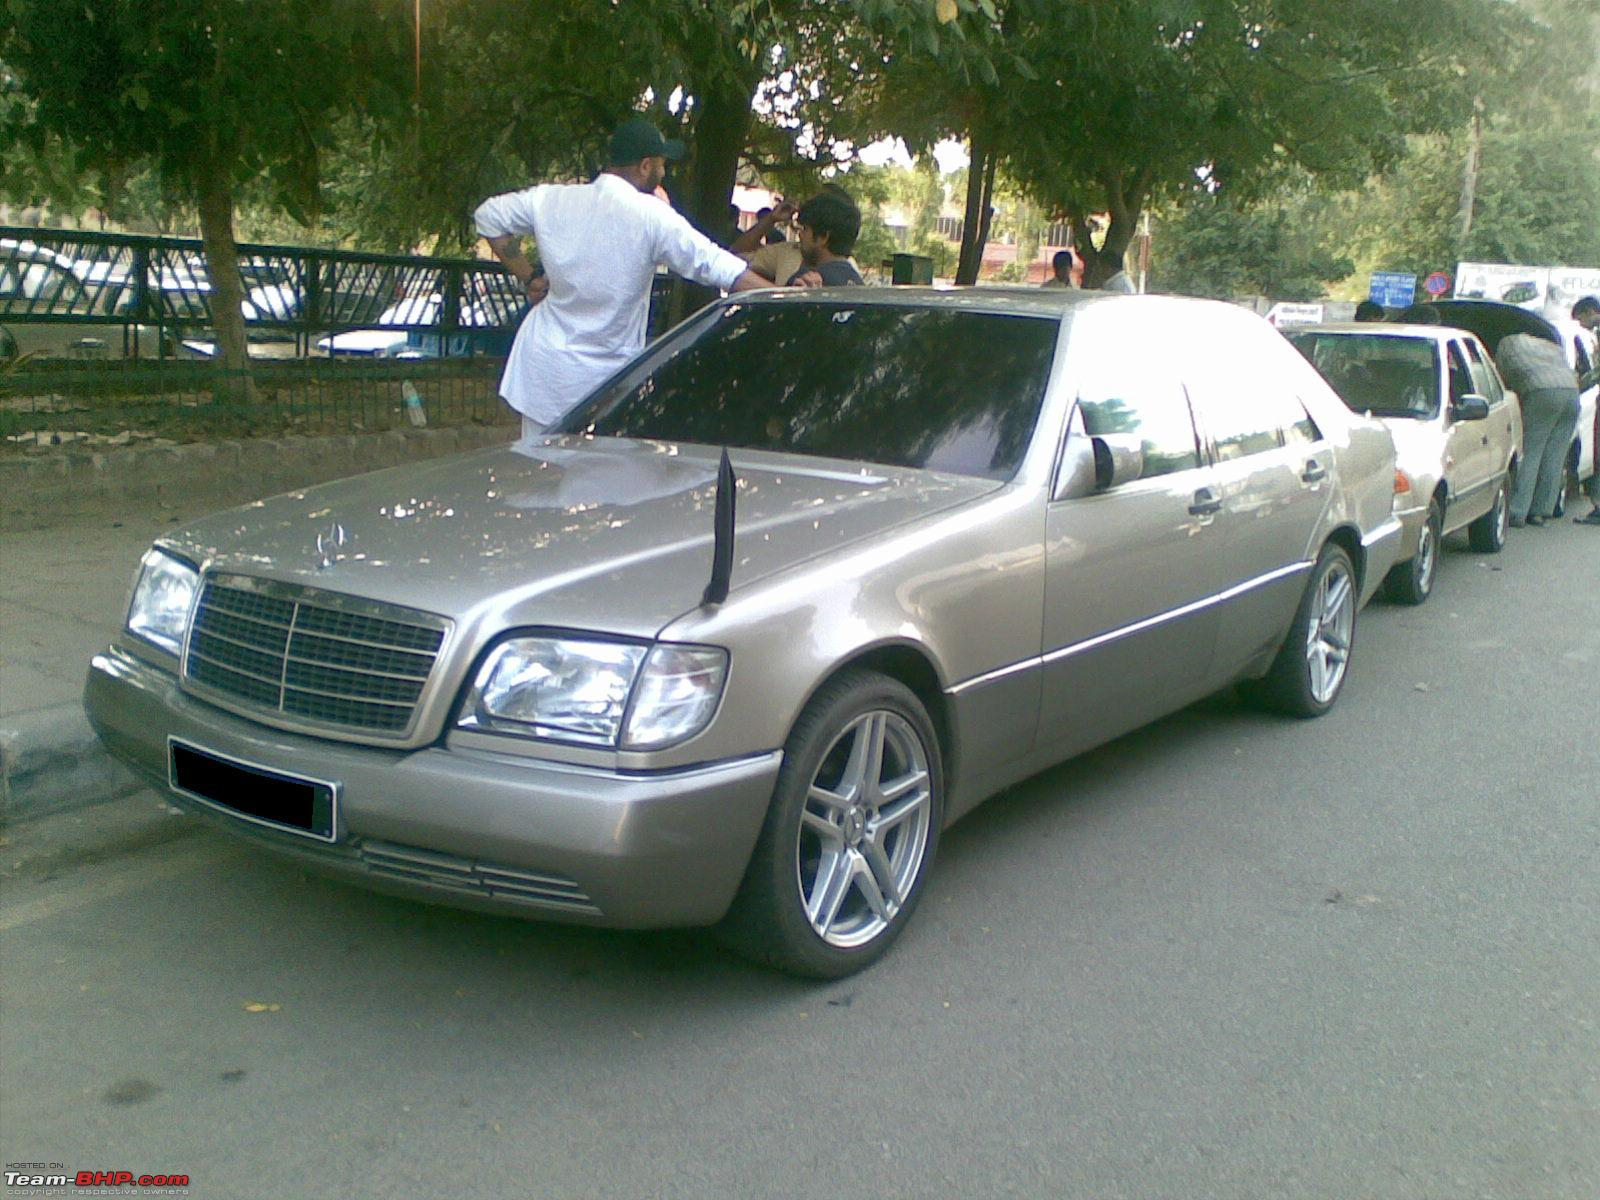 Mercedes w140 for sale in india for Mercedes benz for sale in india